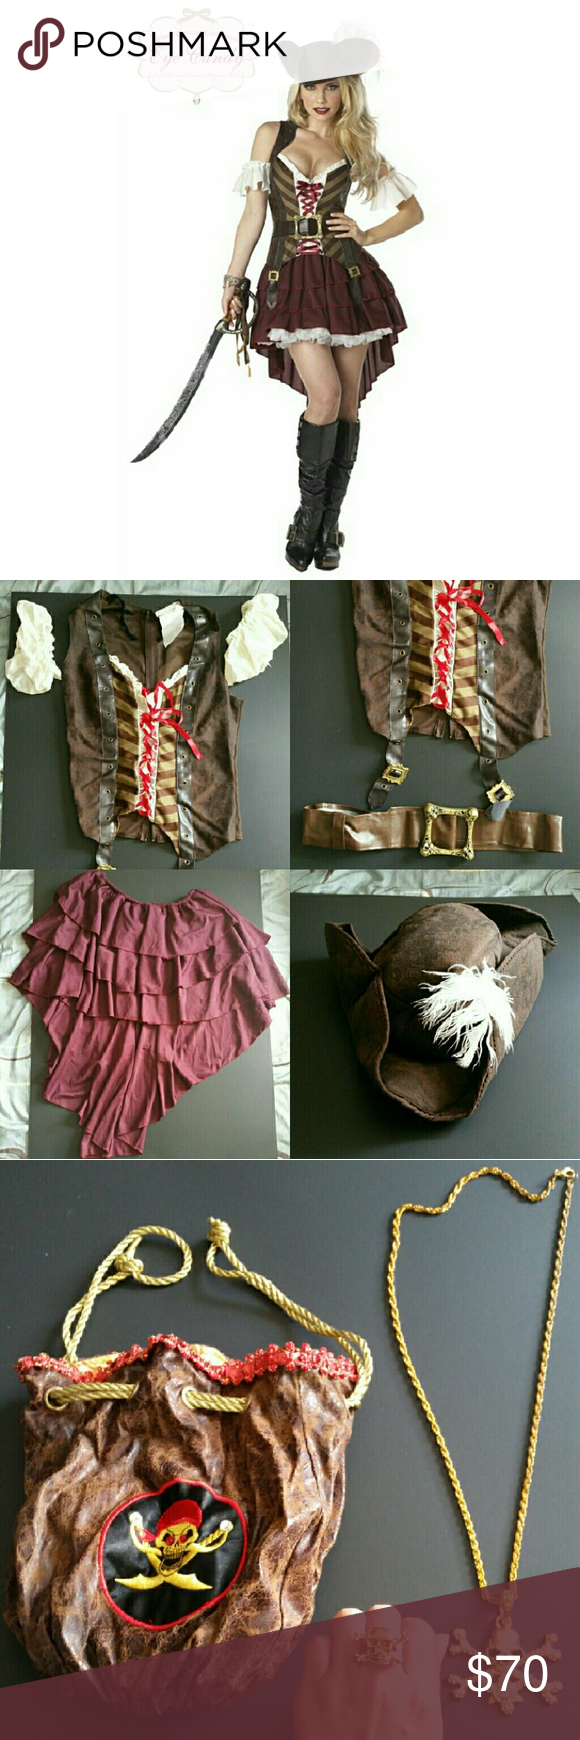 Sexy Pirate Halloween Costume Sexy Pirate Halloween Costume, like new! Worn only once and comes with everything orginally included plus more! The costume includes feathered hat, detachable ruffle sleeves, sleeveless top with lace up bodice, high/low skirt, and belt with skull buckle. Size Small. The extras are in the 3rd photo which include the really cute pirate bag, medallion necklace, and adjustable ring. Other